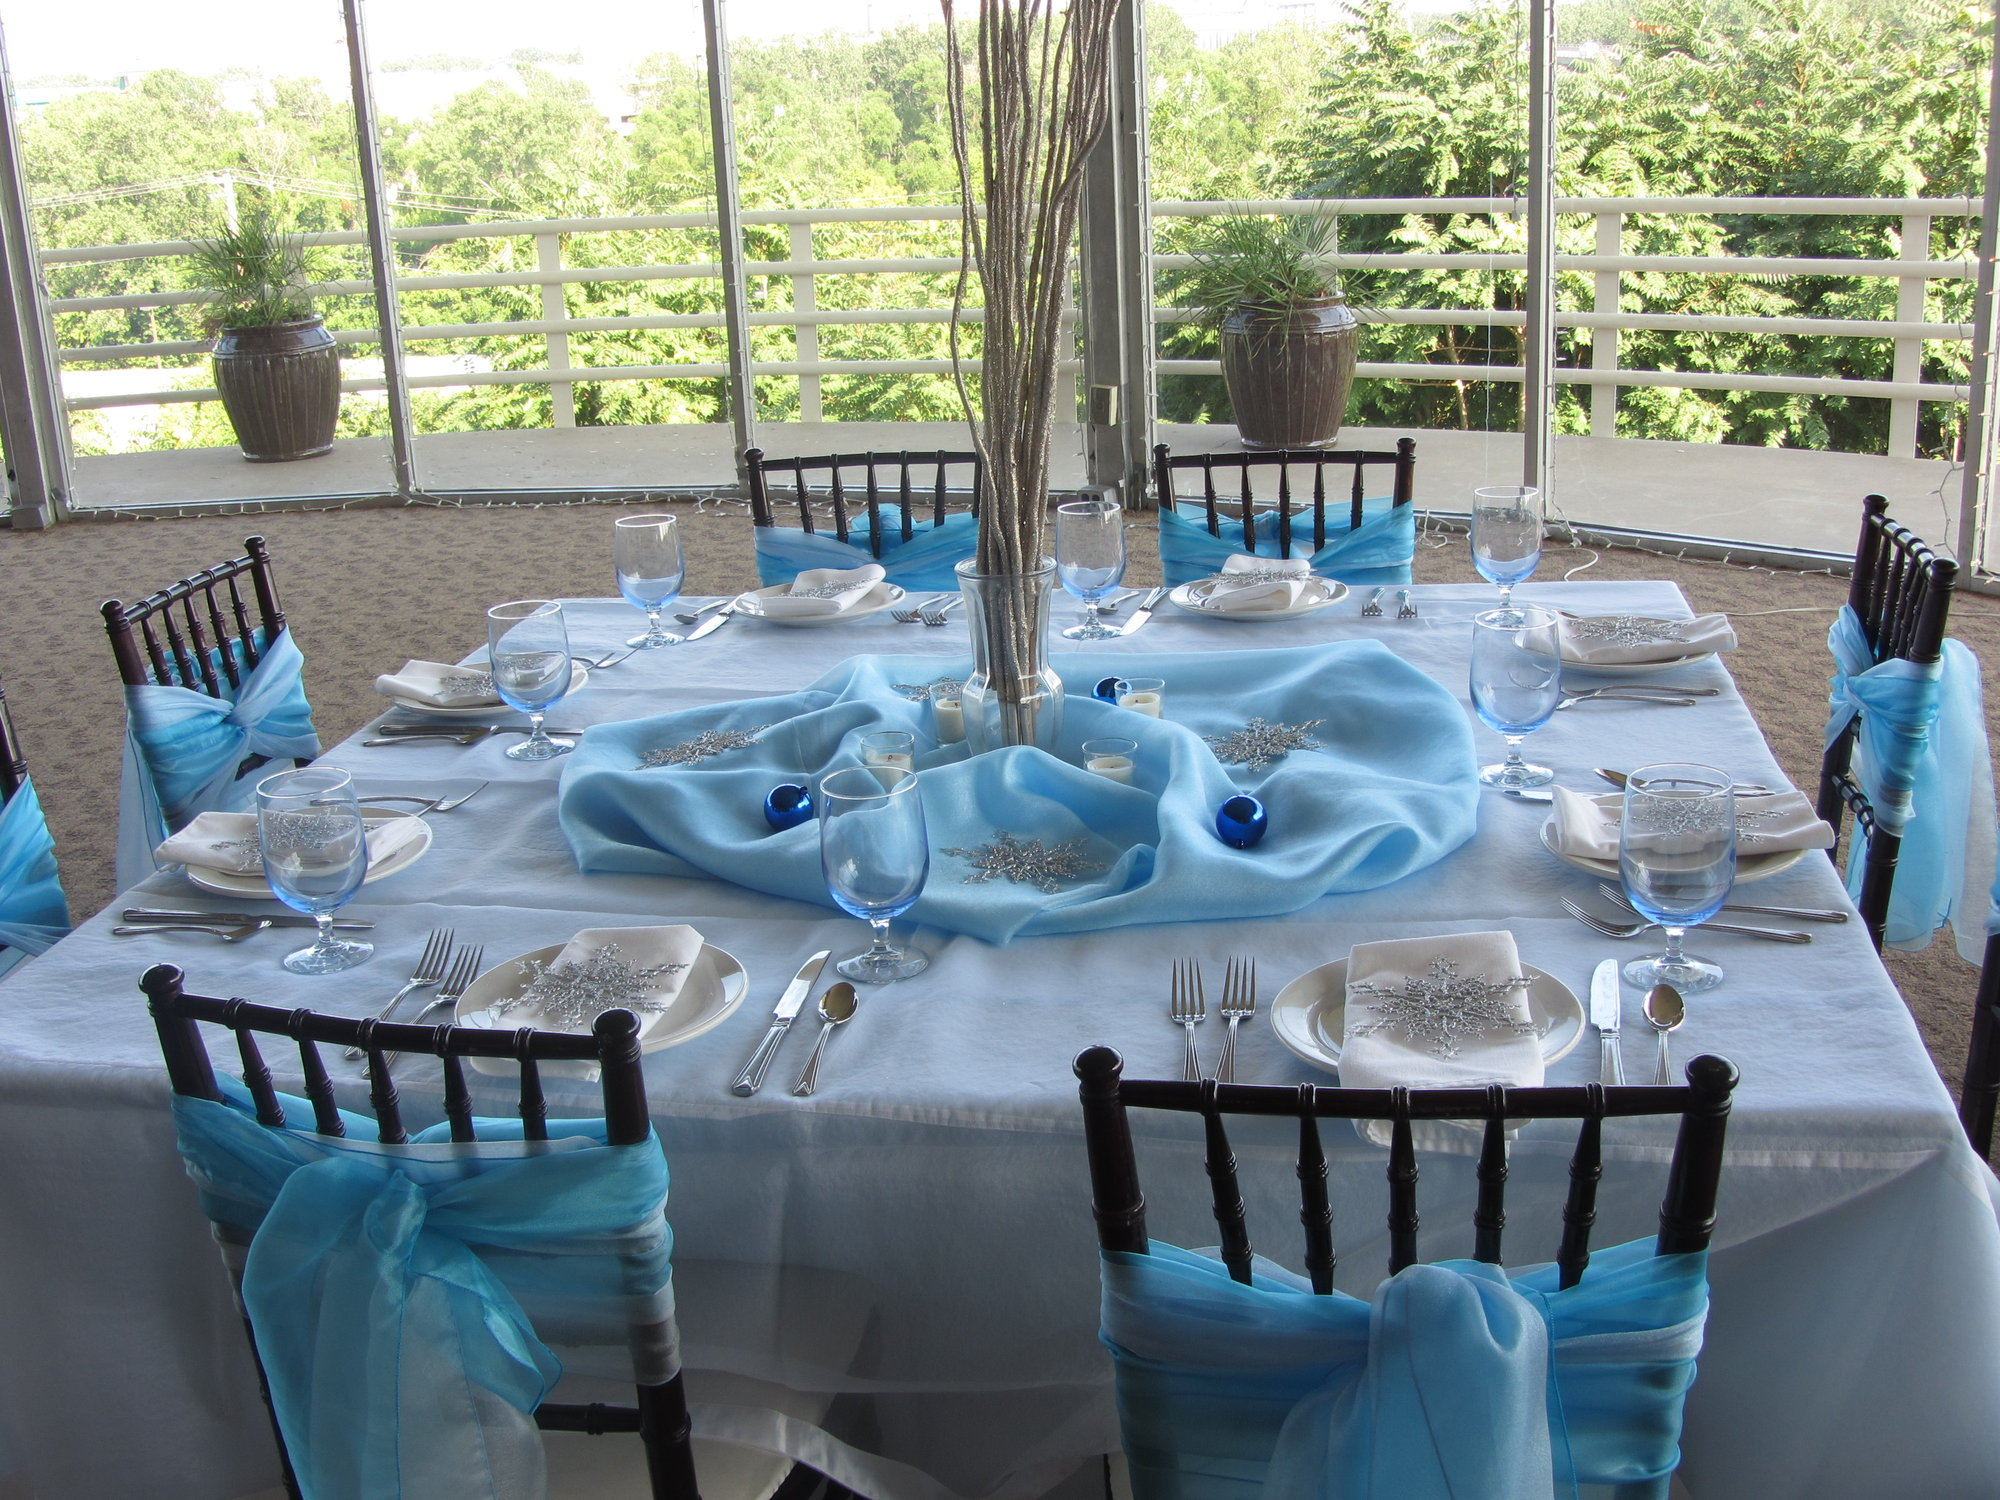 Winter Tablescape and Centerpieces Decorations Ideas-interior-design-awesome-winter-themed-table-decorations-home